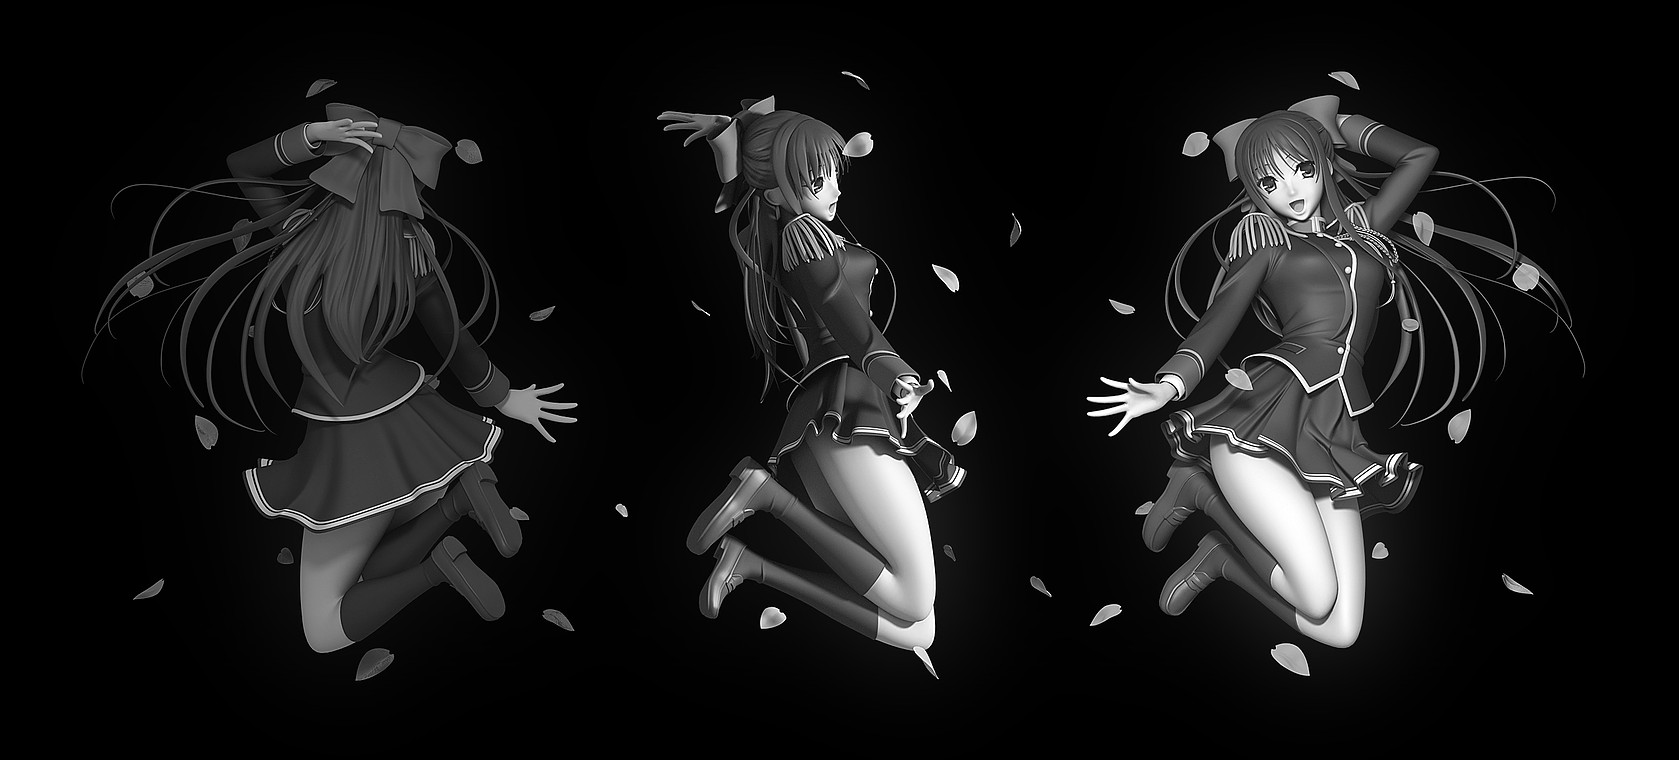 3D Model of Anime Image